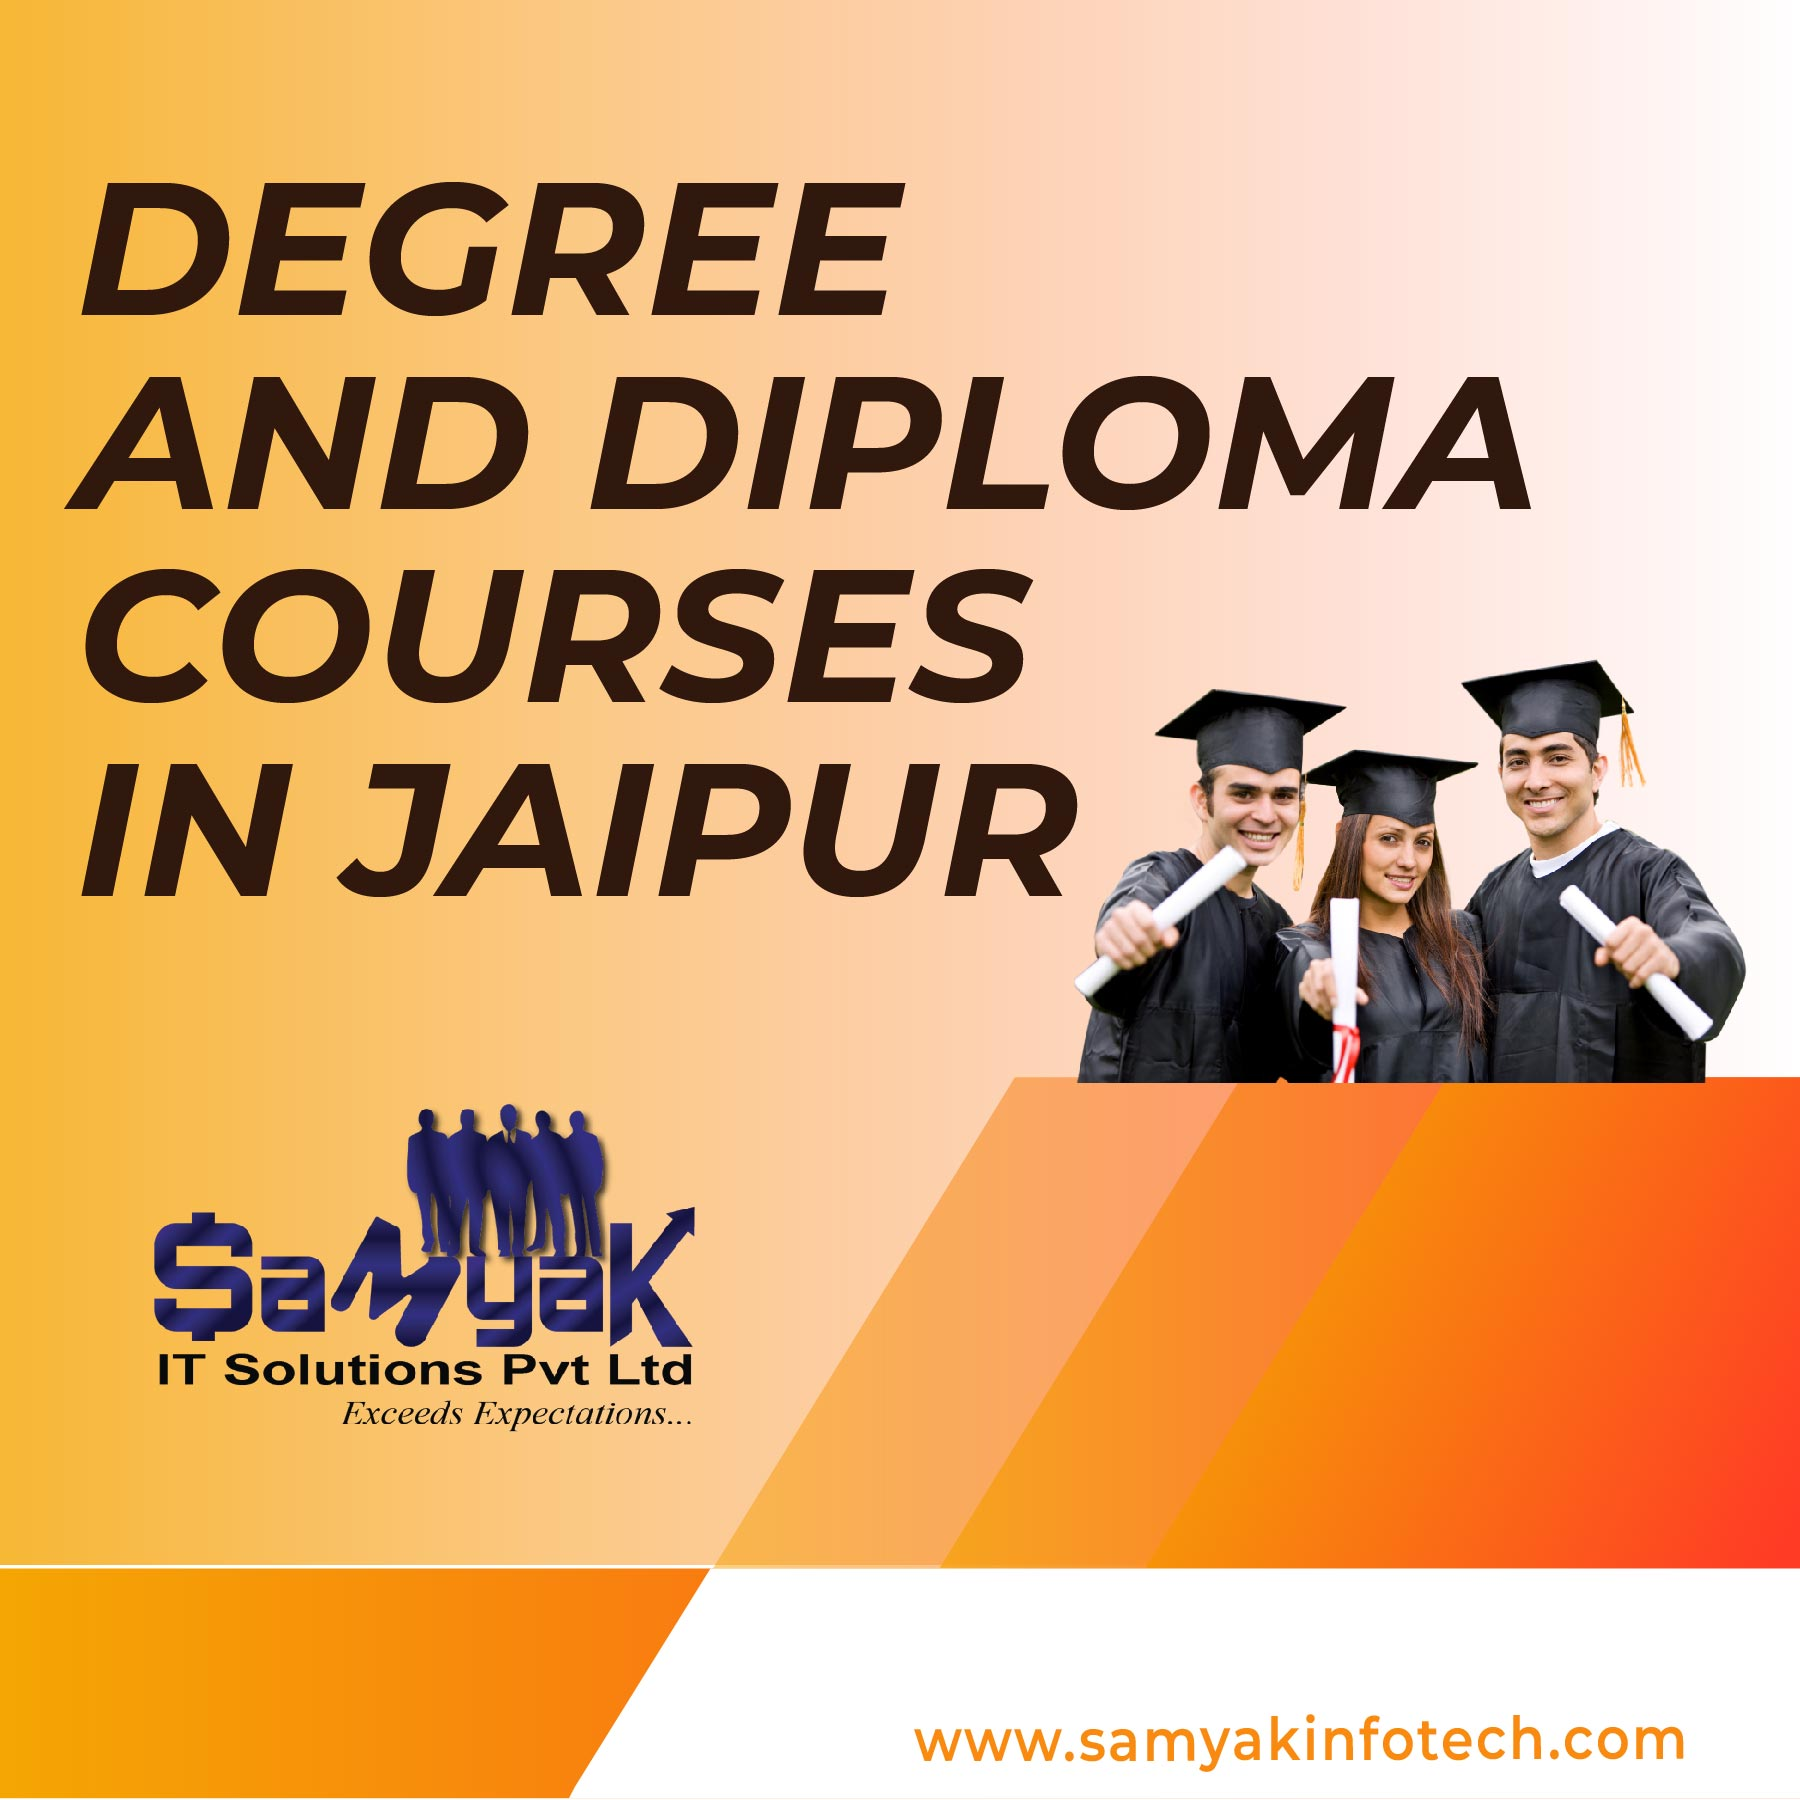 Degree And Diploma Programs Gurgaon, Ahmedabad, Jaipur